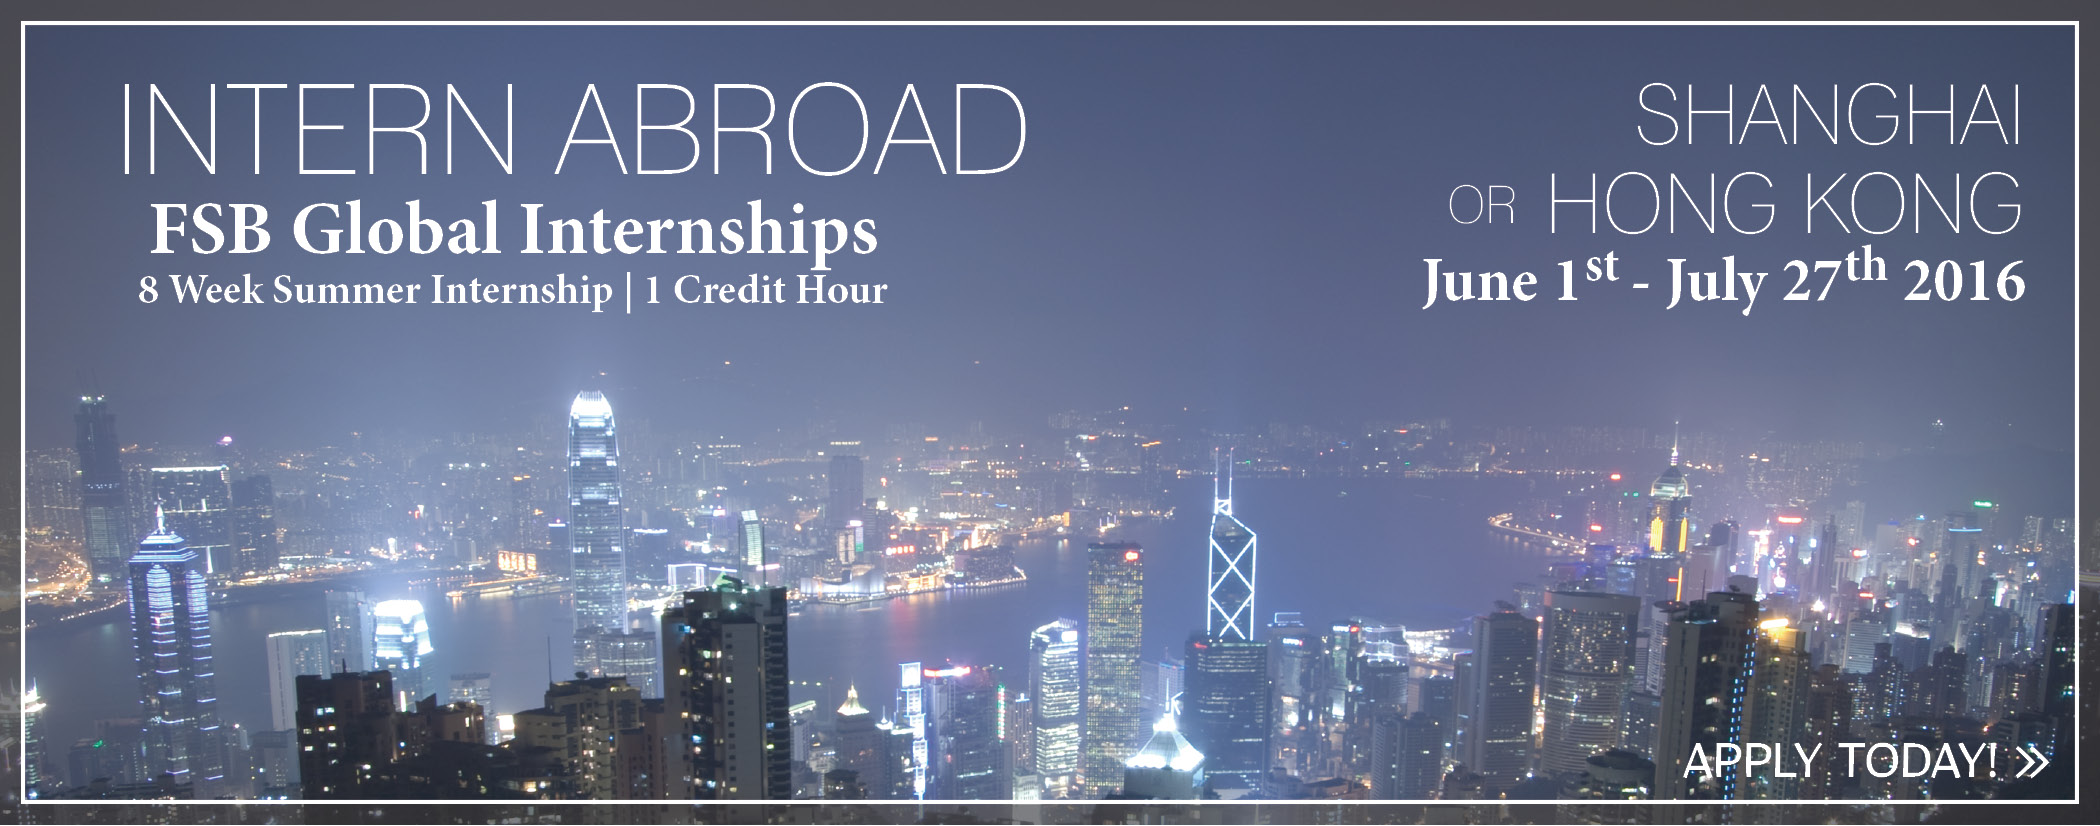 Intern Abroad FSB Global Internships 8 week summer internship / 1 credit hour.  Shanghai or Hong Kong.  6/1 - 7/27/16